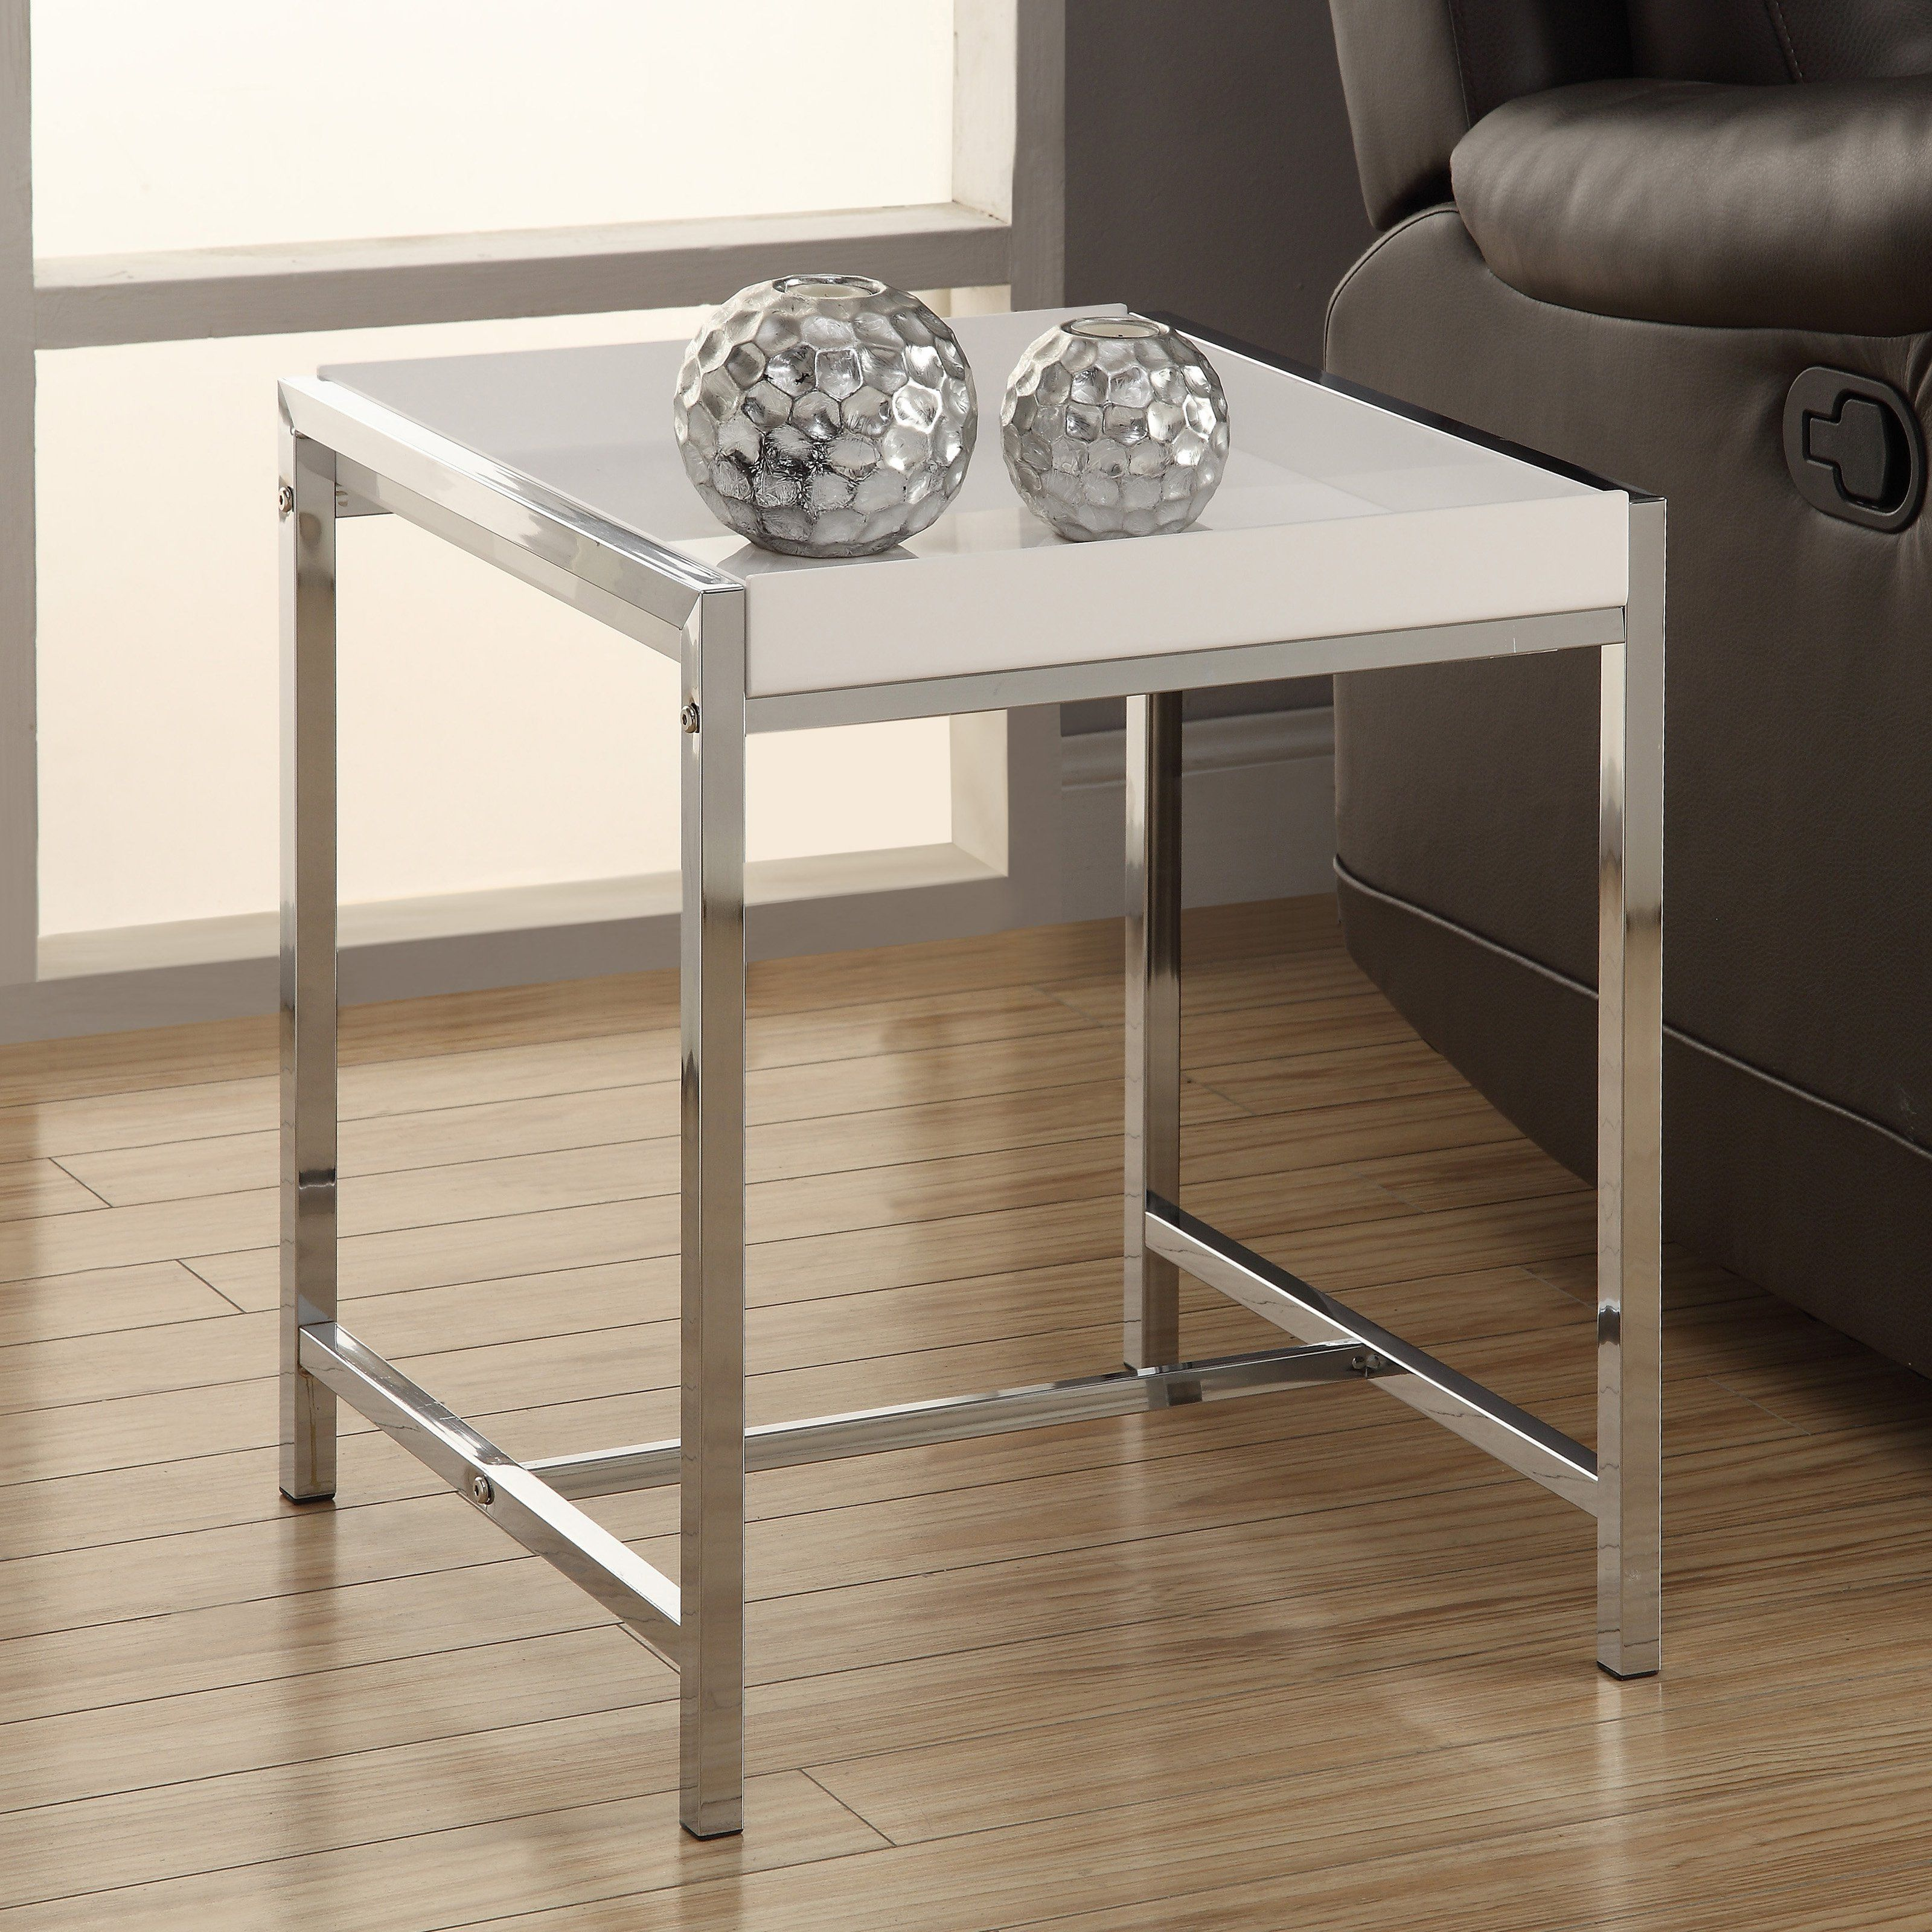 Prime Monarch I 30 Acrylic Metal Accent Table I 3050 Products Machost Co Dining Chair Design Ideas Machostcouk